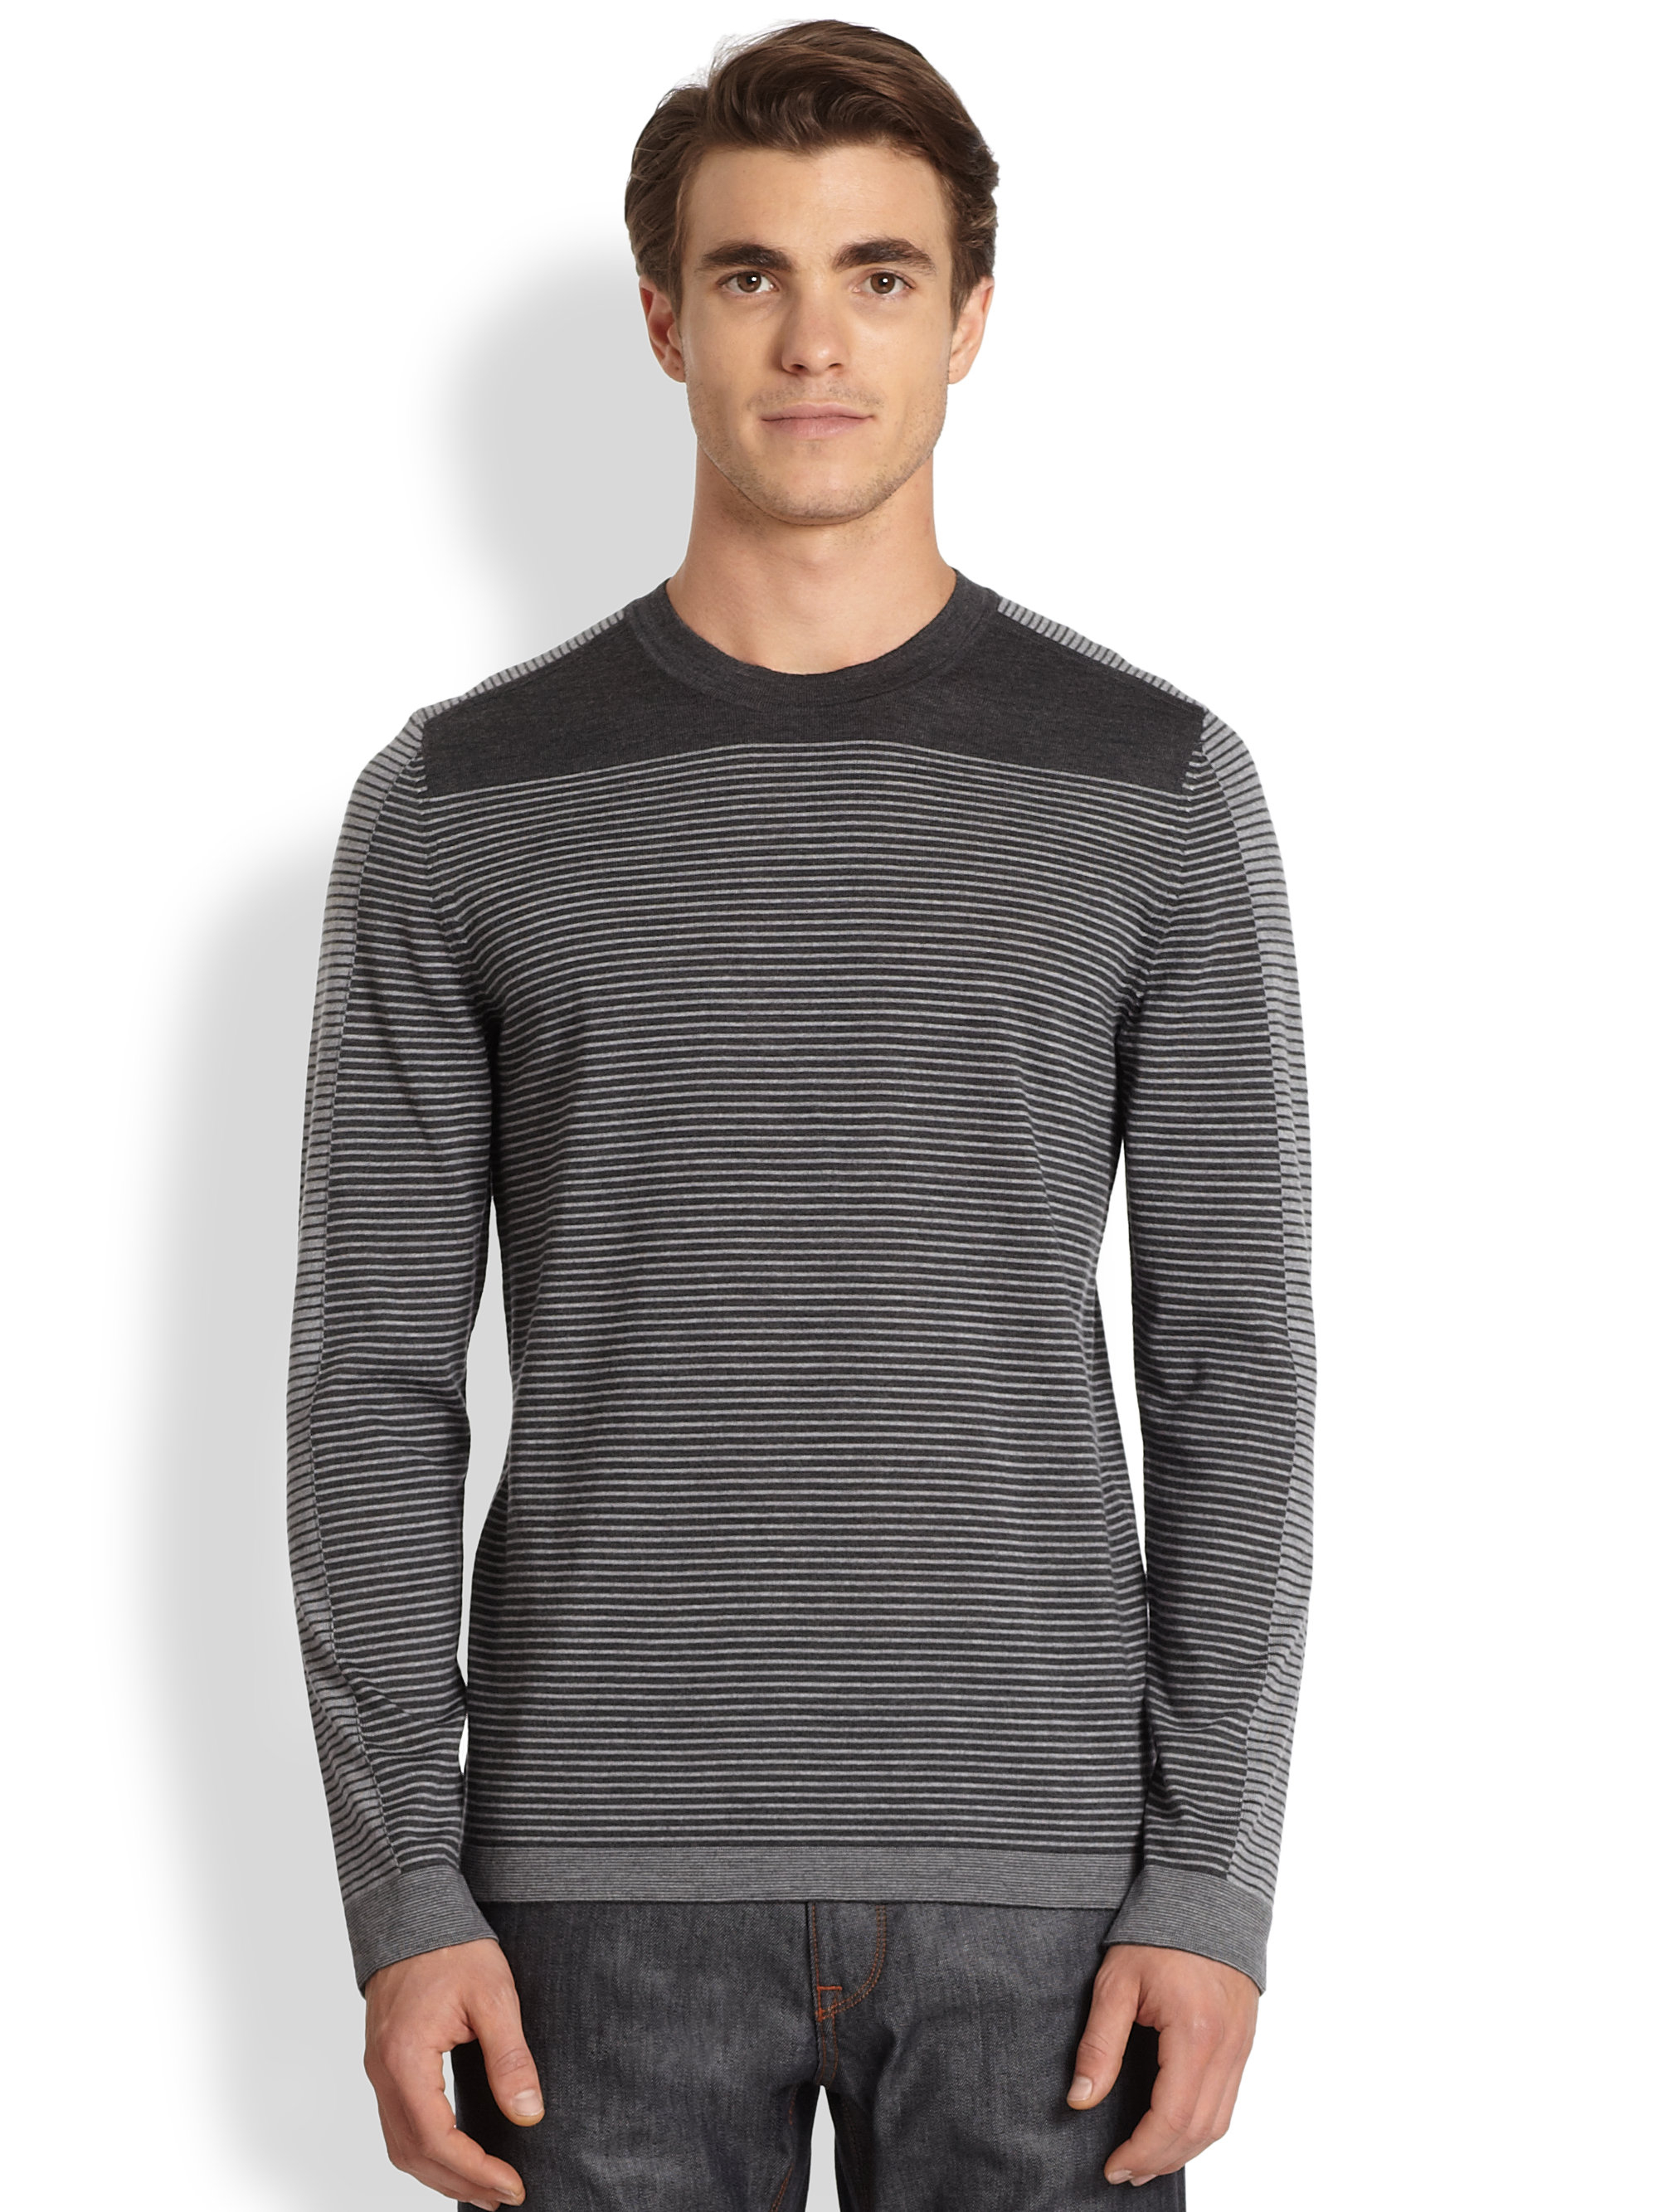 hugo boss merro striped wool sweater in black for men dark blue lyst. Black Bedroom Furniture Sets. Home Design Ideas